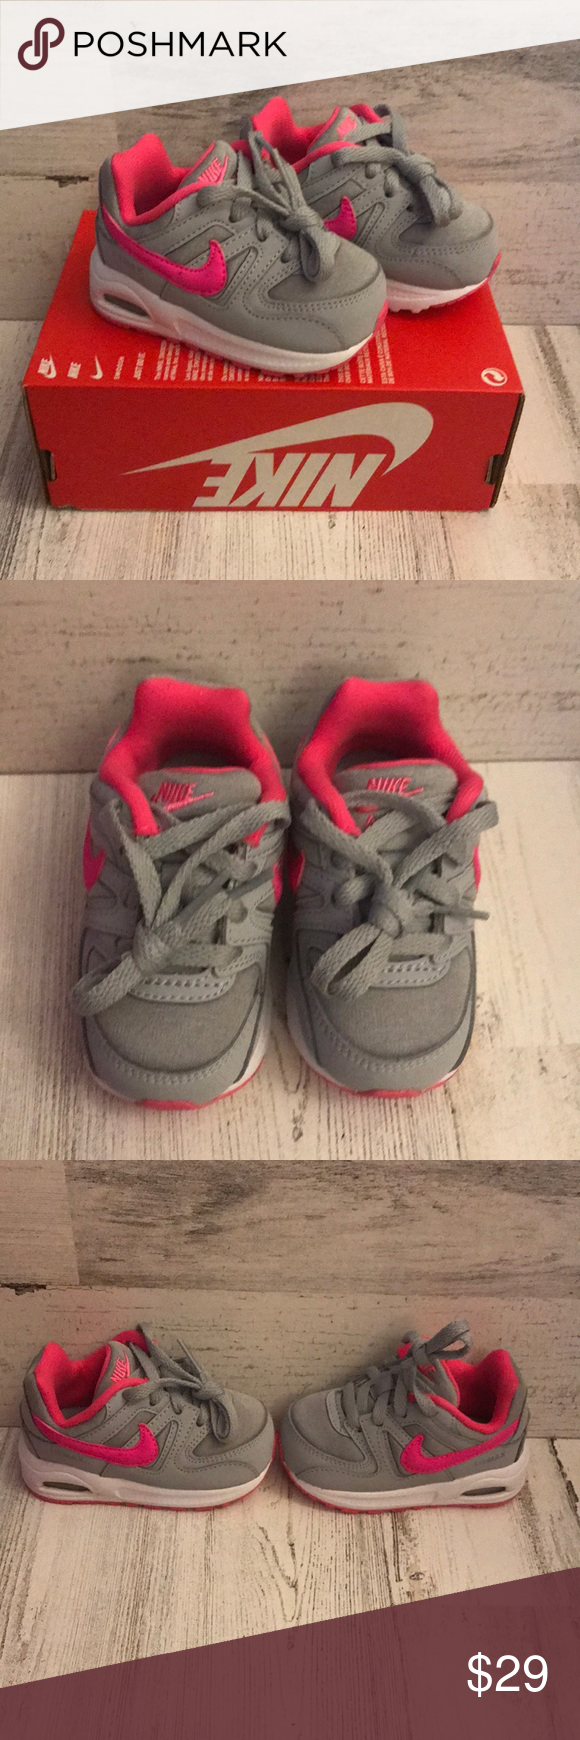 0471f9fb2a3c1 NWT Nike Air Max Command Brand new in box (no top) Nike Girls Air Max  Command Flex Size 4c and 5c available Nike Shoes Baby   Walker